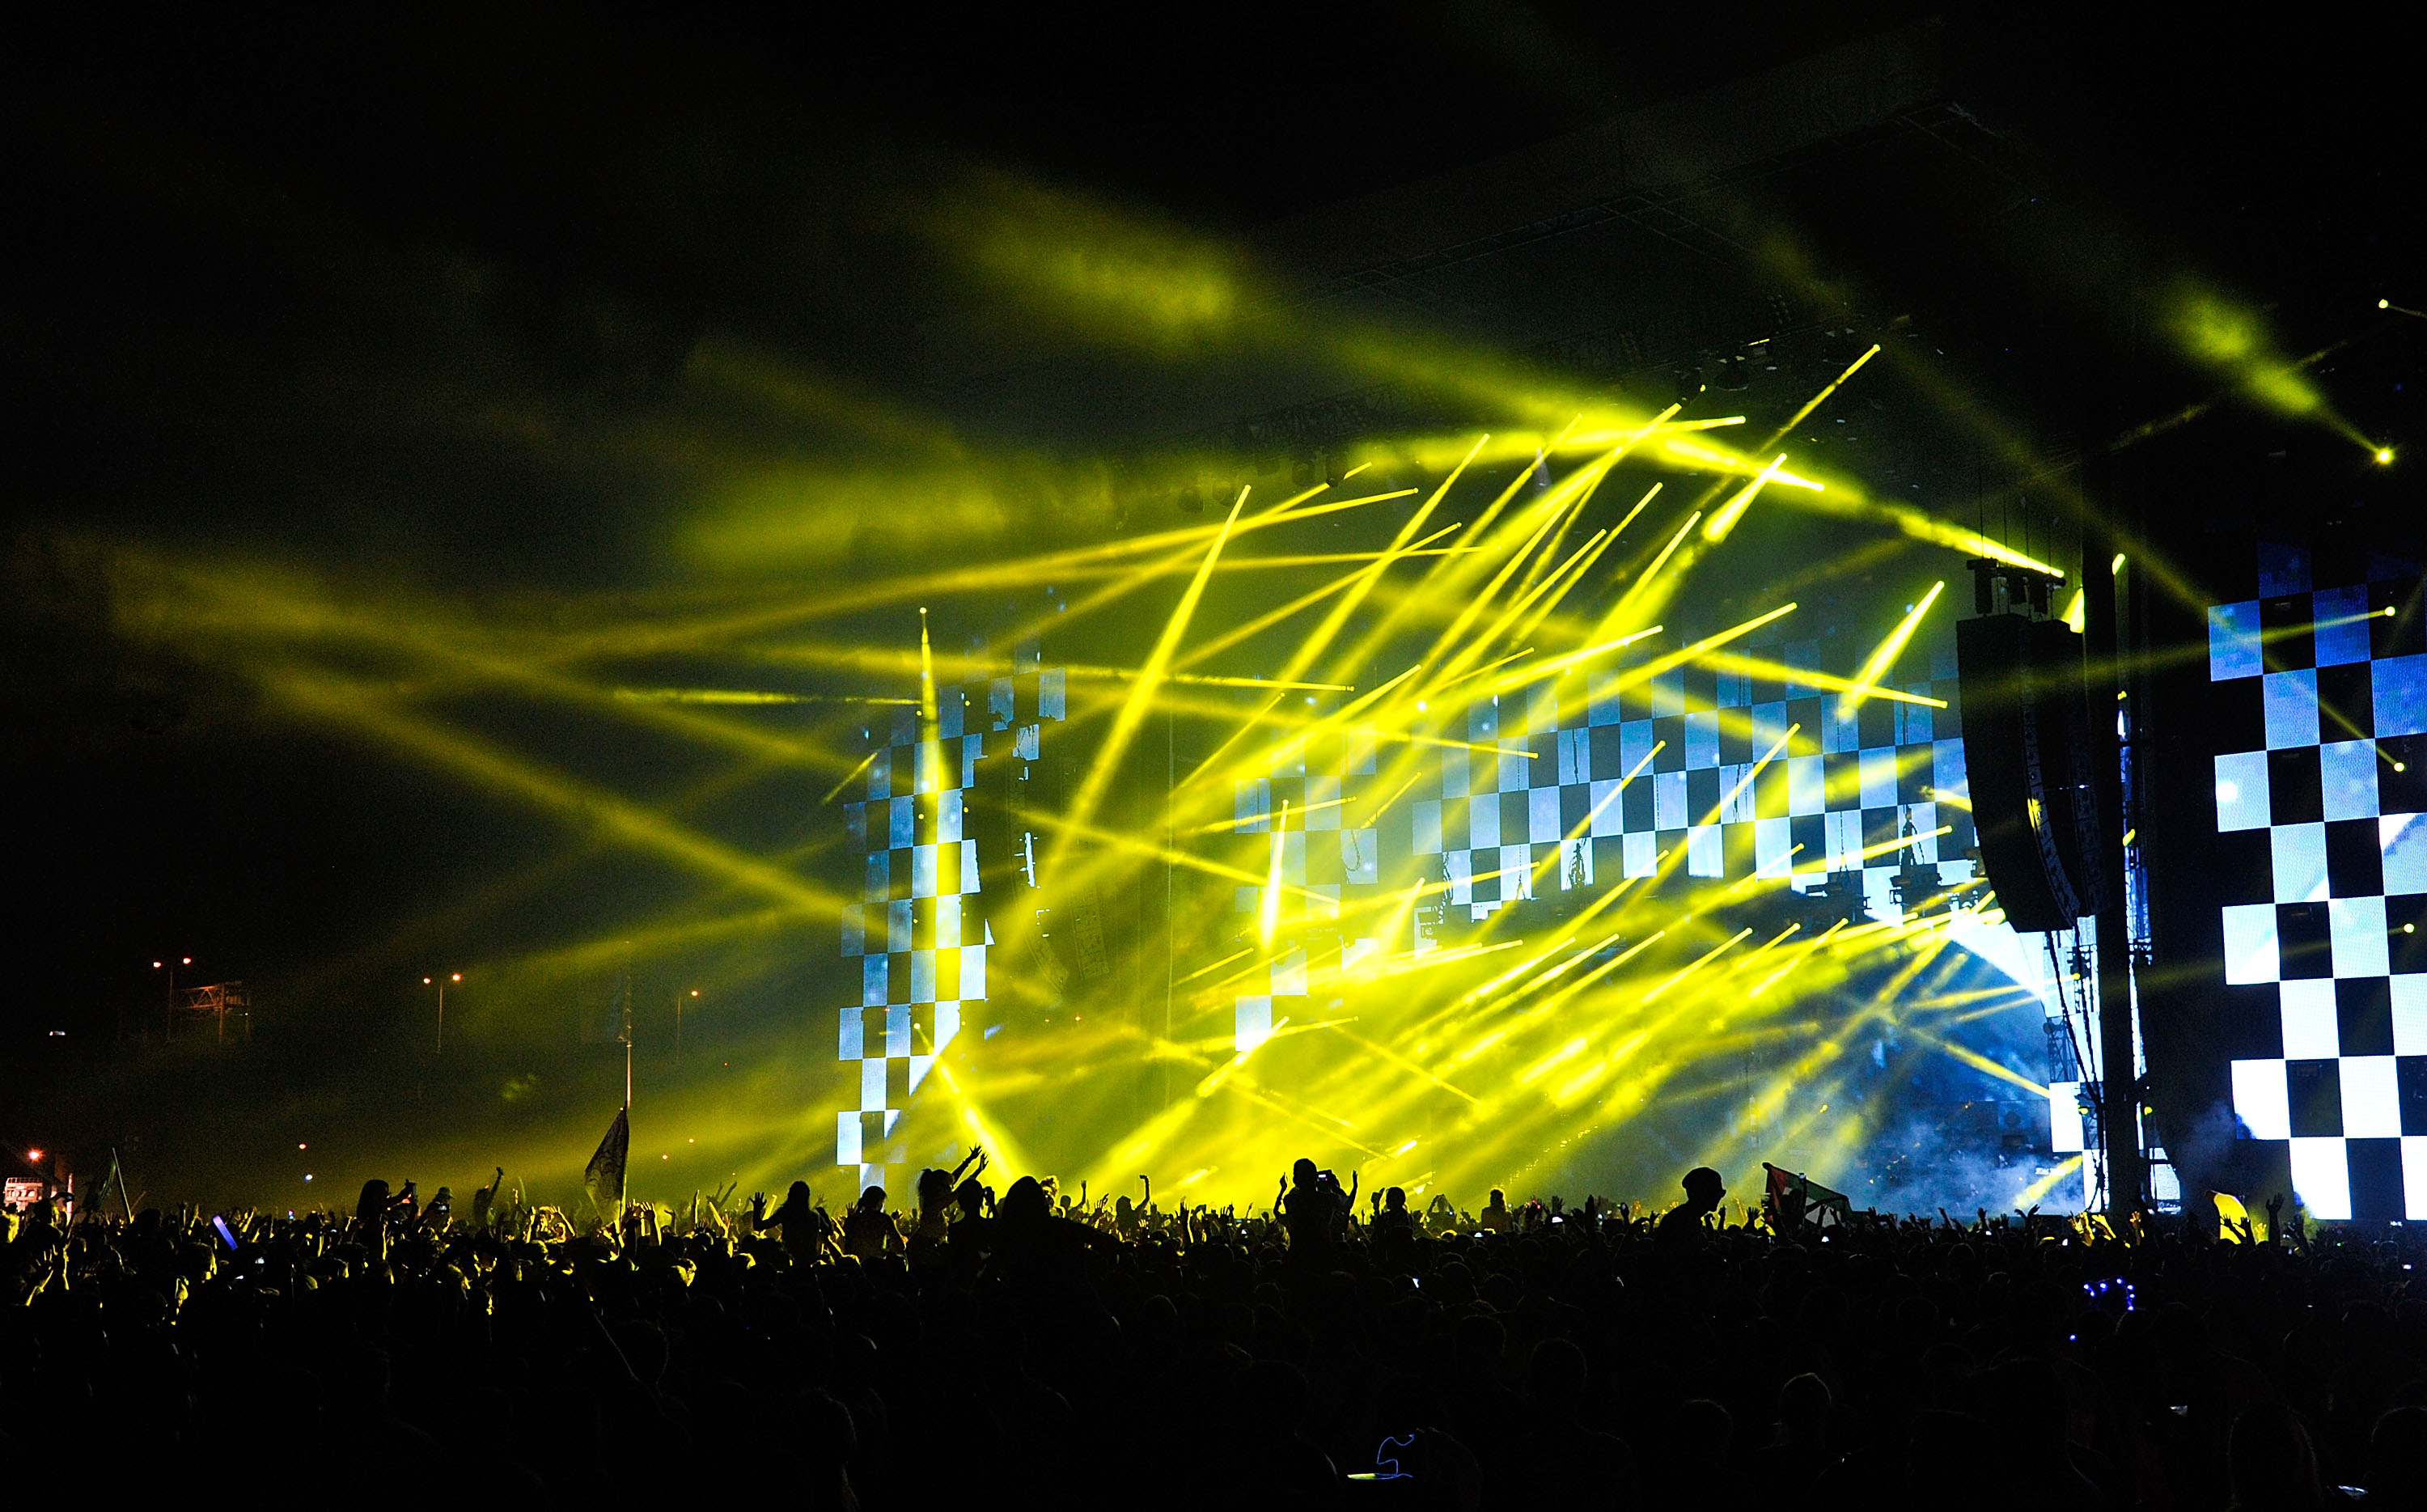 Avicii performs during Electric Zoo 2013 at Randall's Island on August 30, 2013 in New York City.